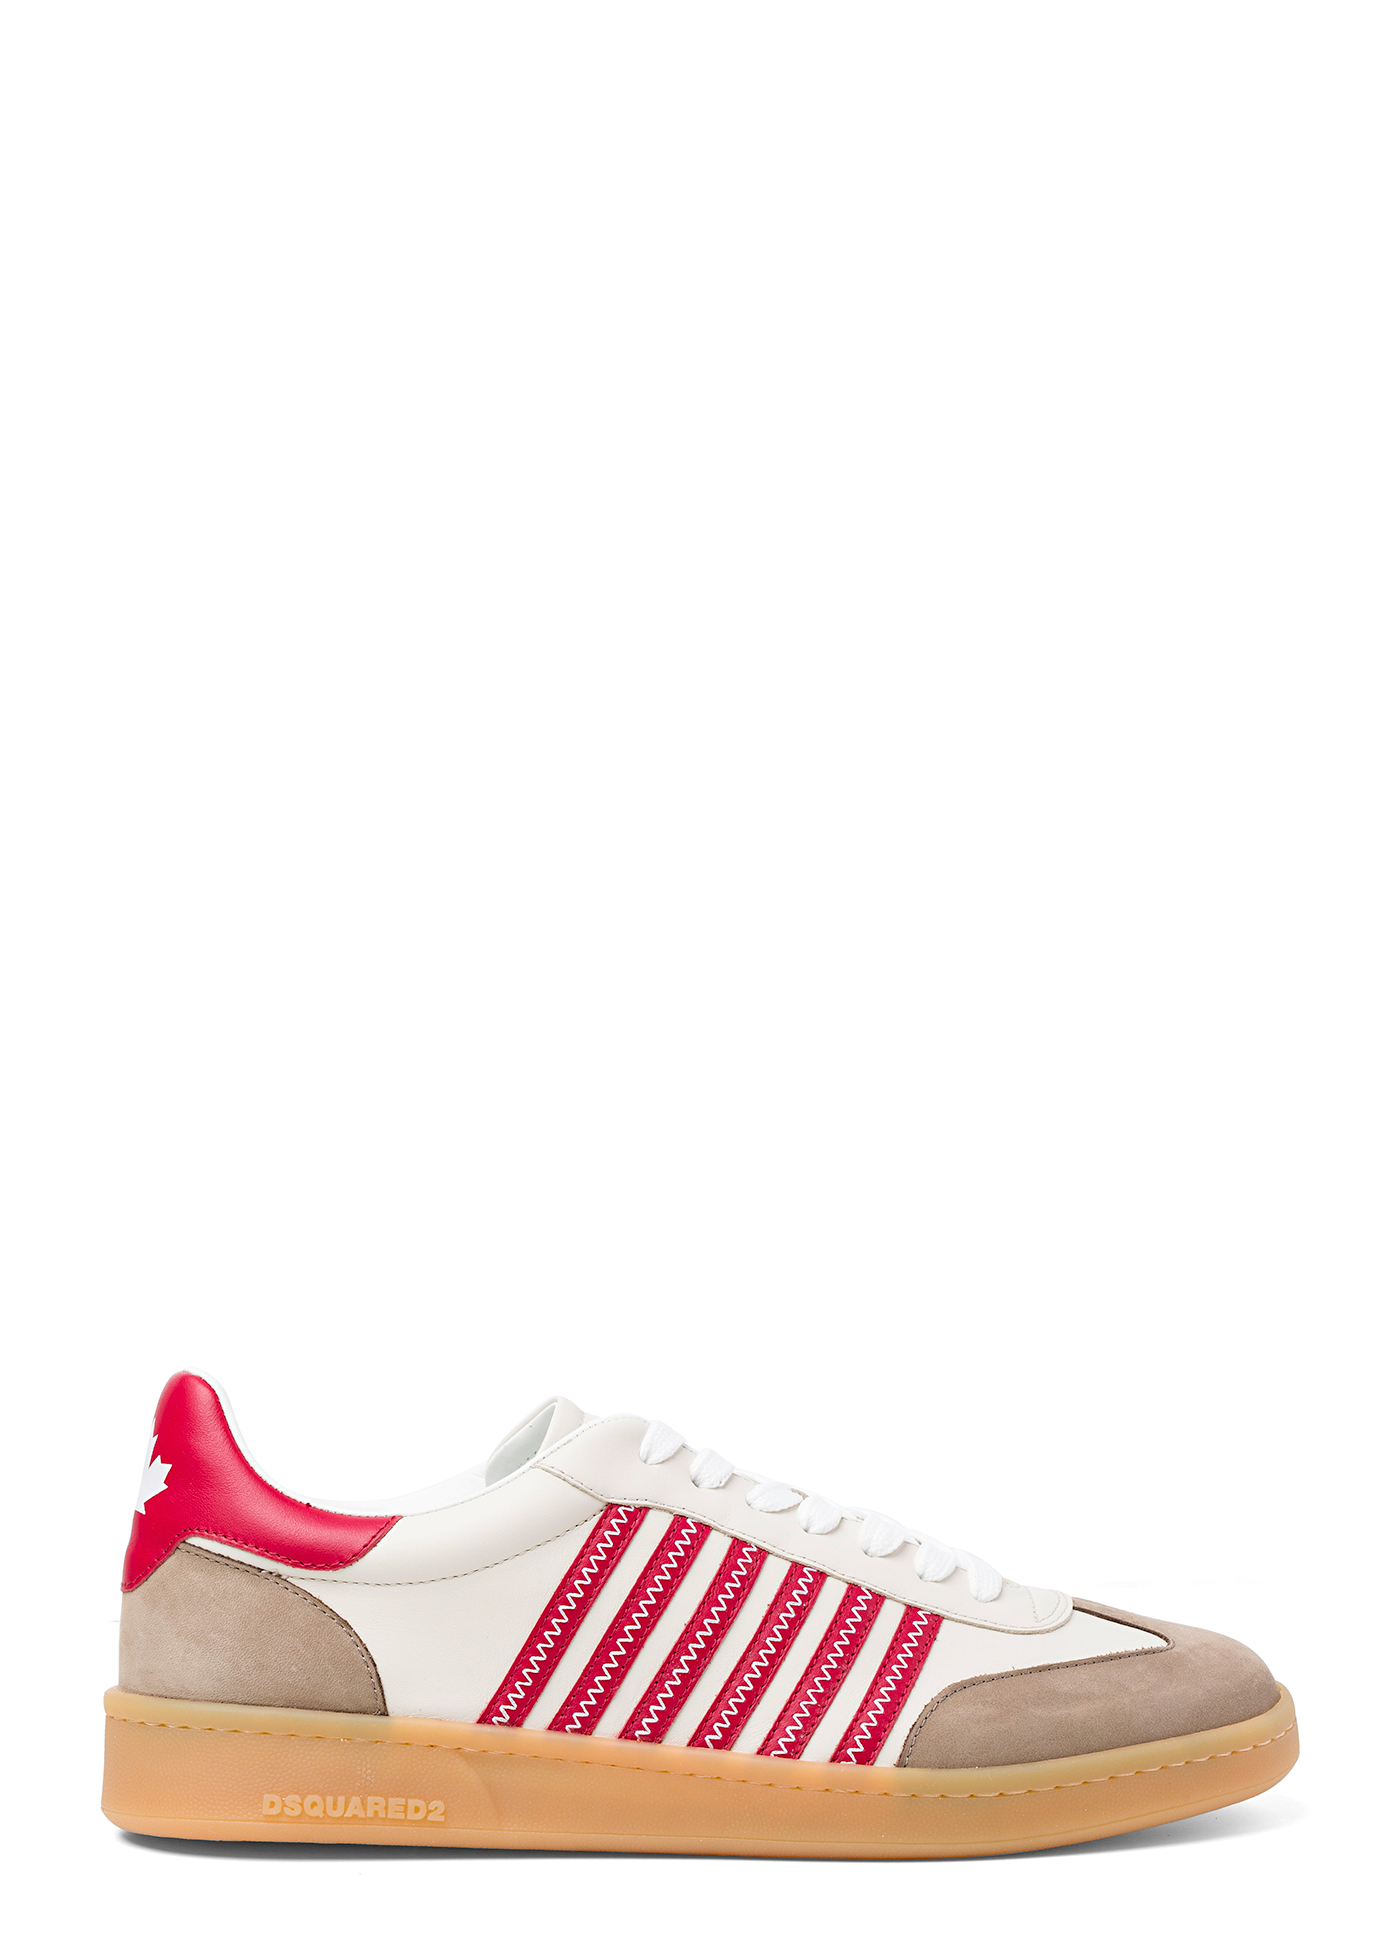 THE CANADIAN SNEAKERS W/ STRIPES image number 0